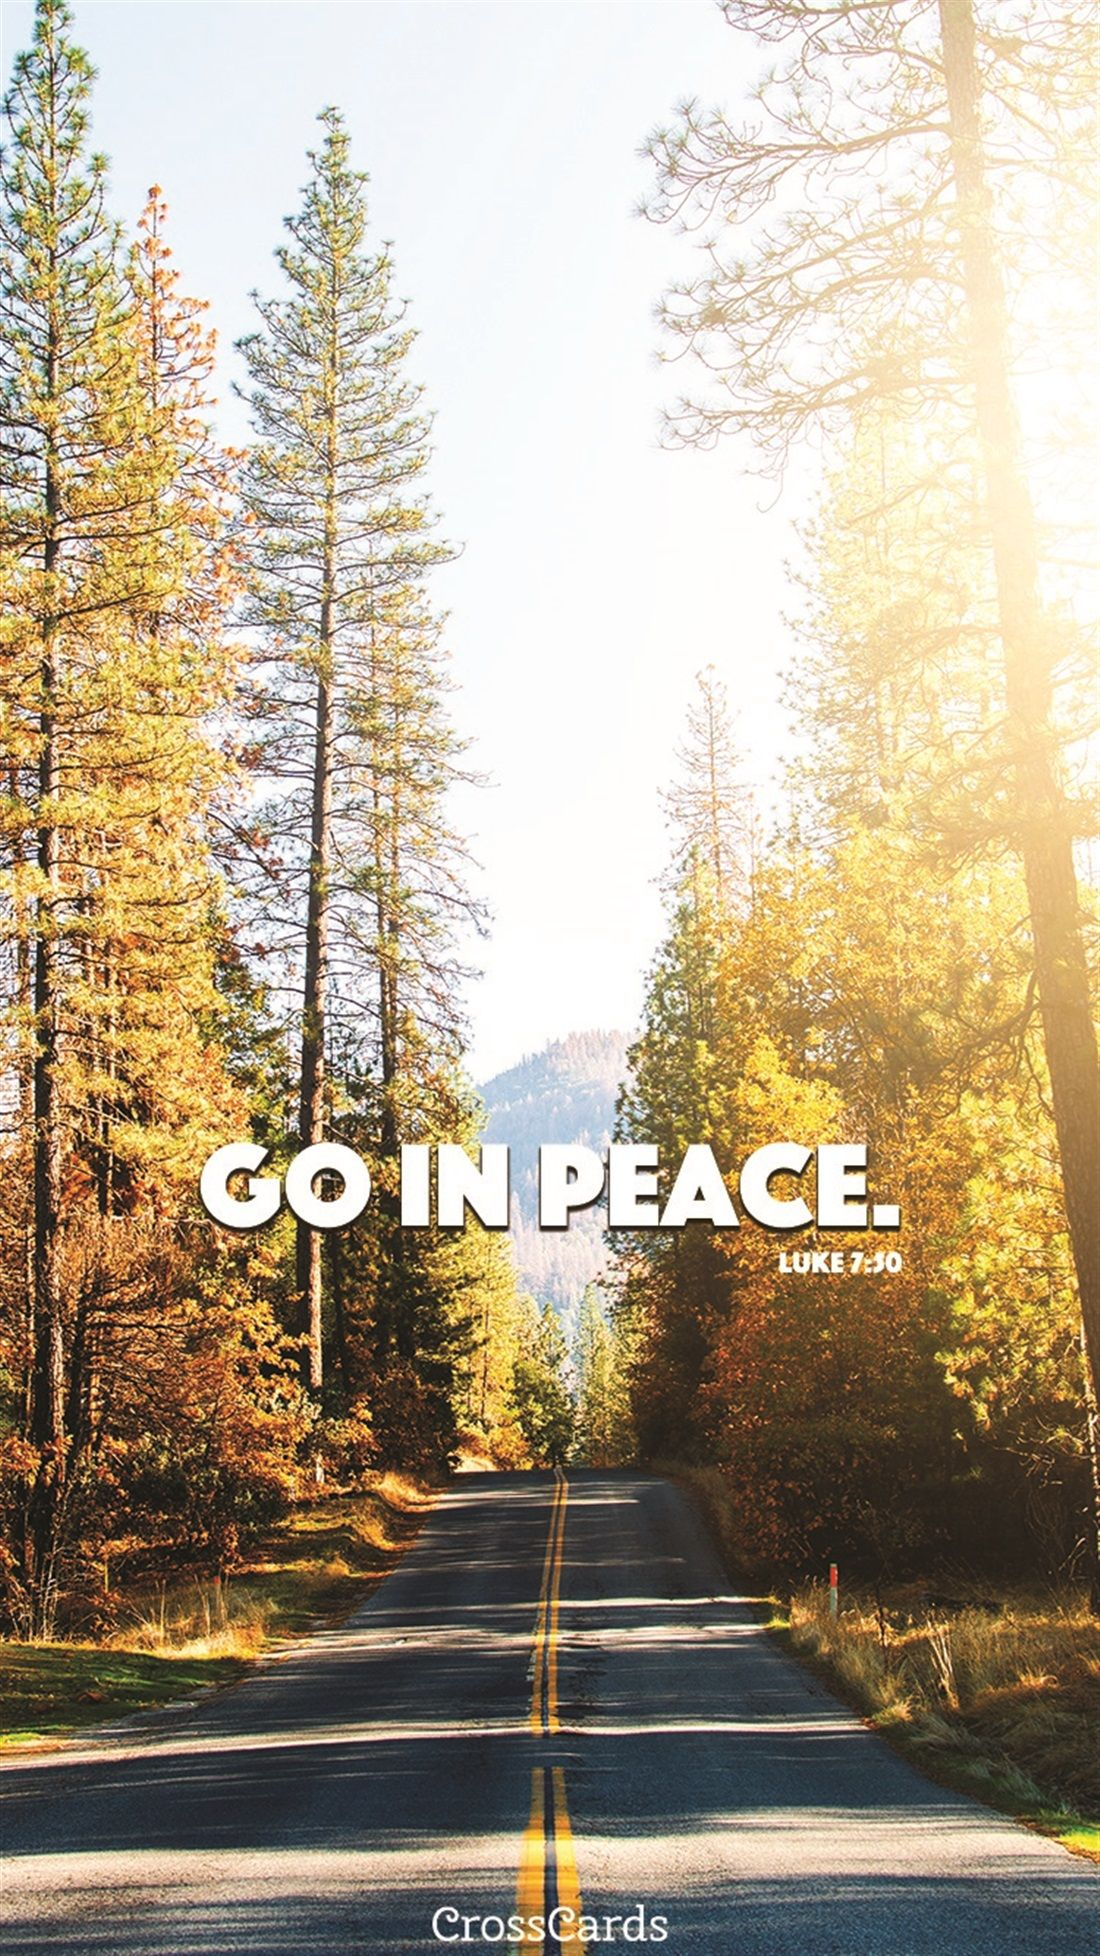 Go in Peace Online greeting cards, Christian ecards